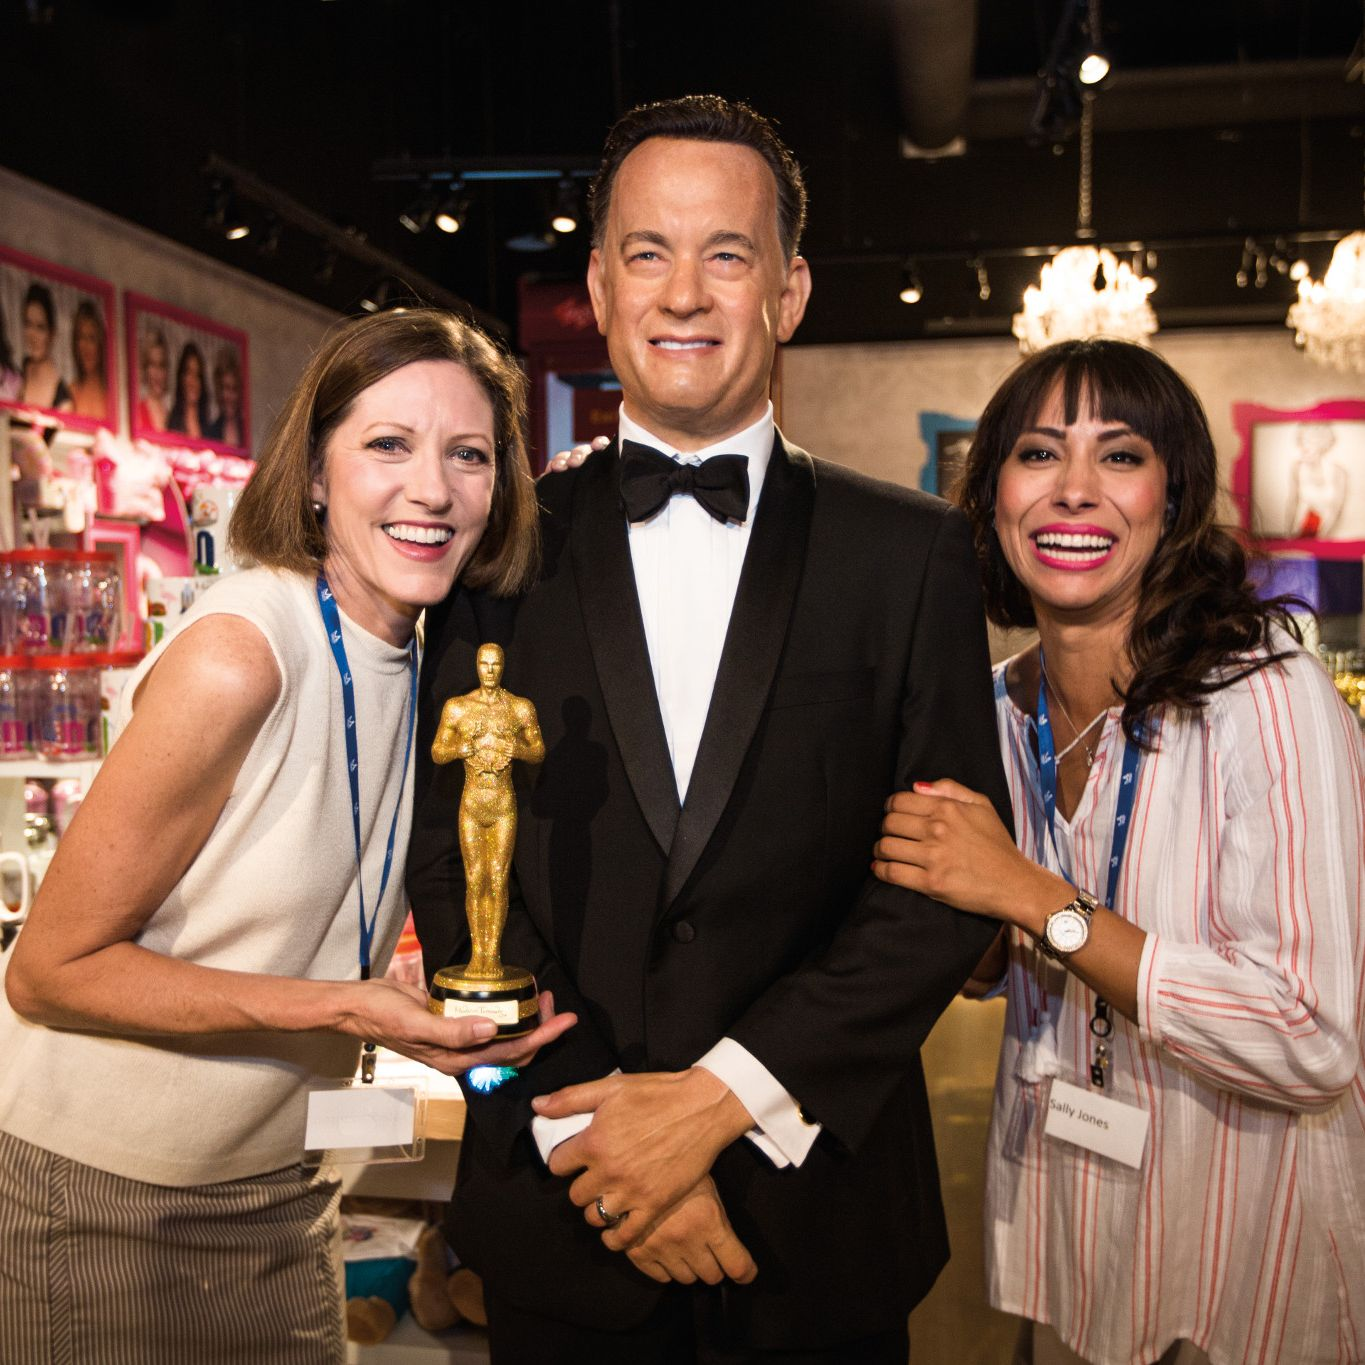 cs_2015_idrive360_tussauds_hanks_0801.jpg